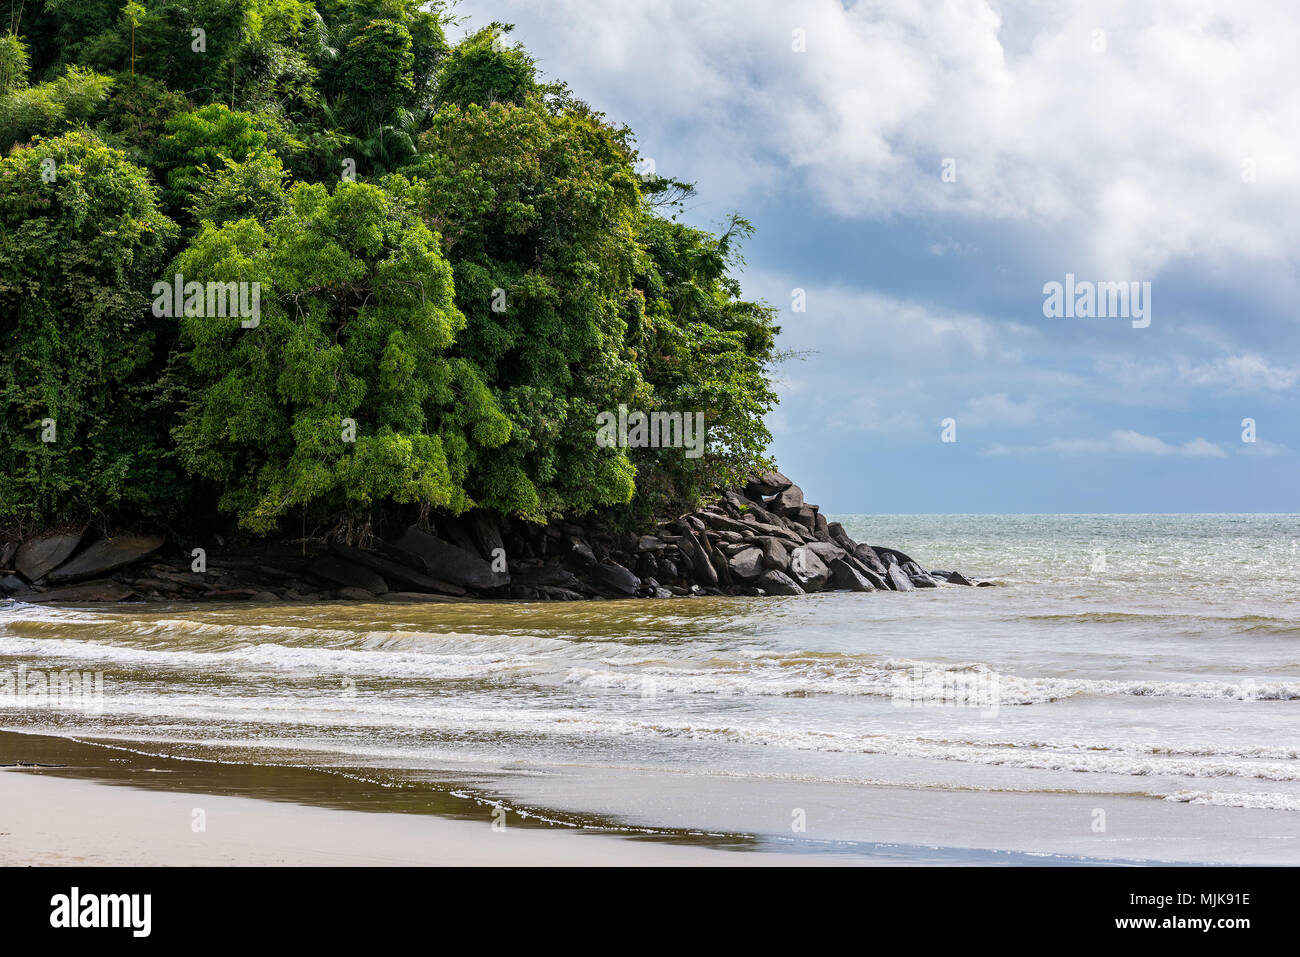 The beach has rocky outcrops in the sea. - Stock Image